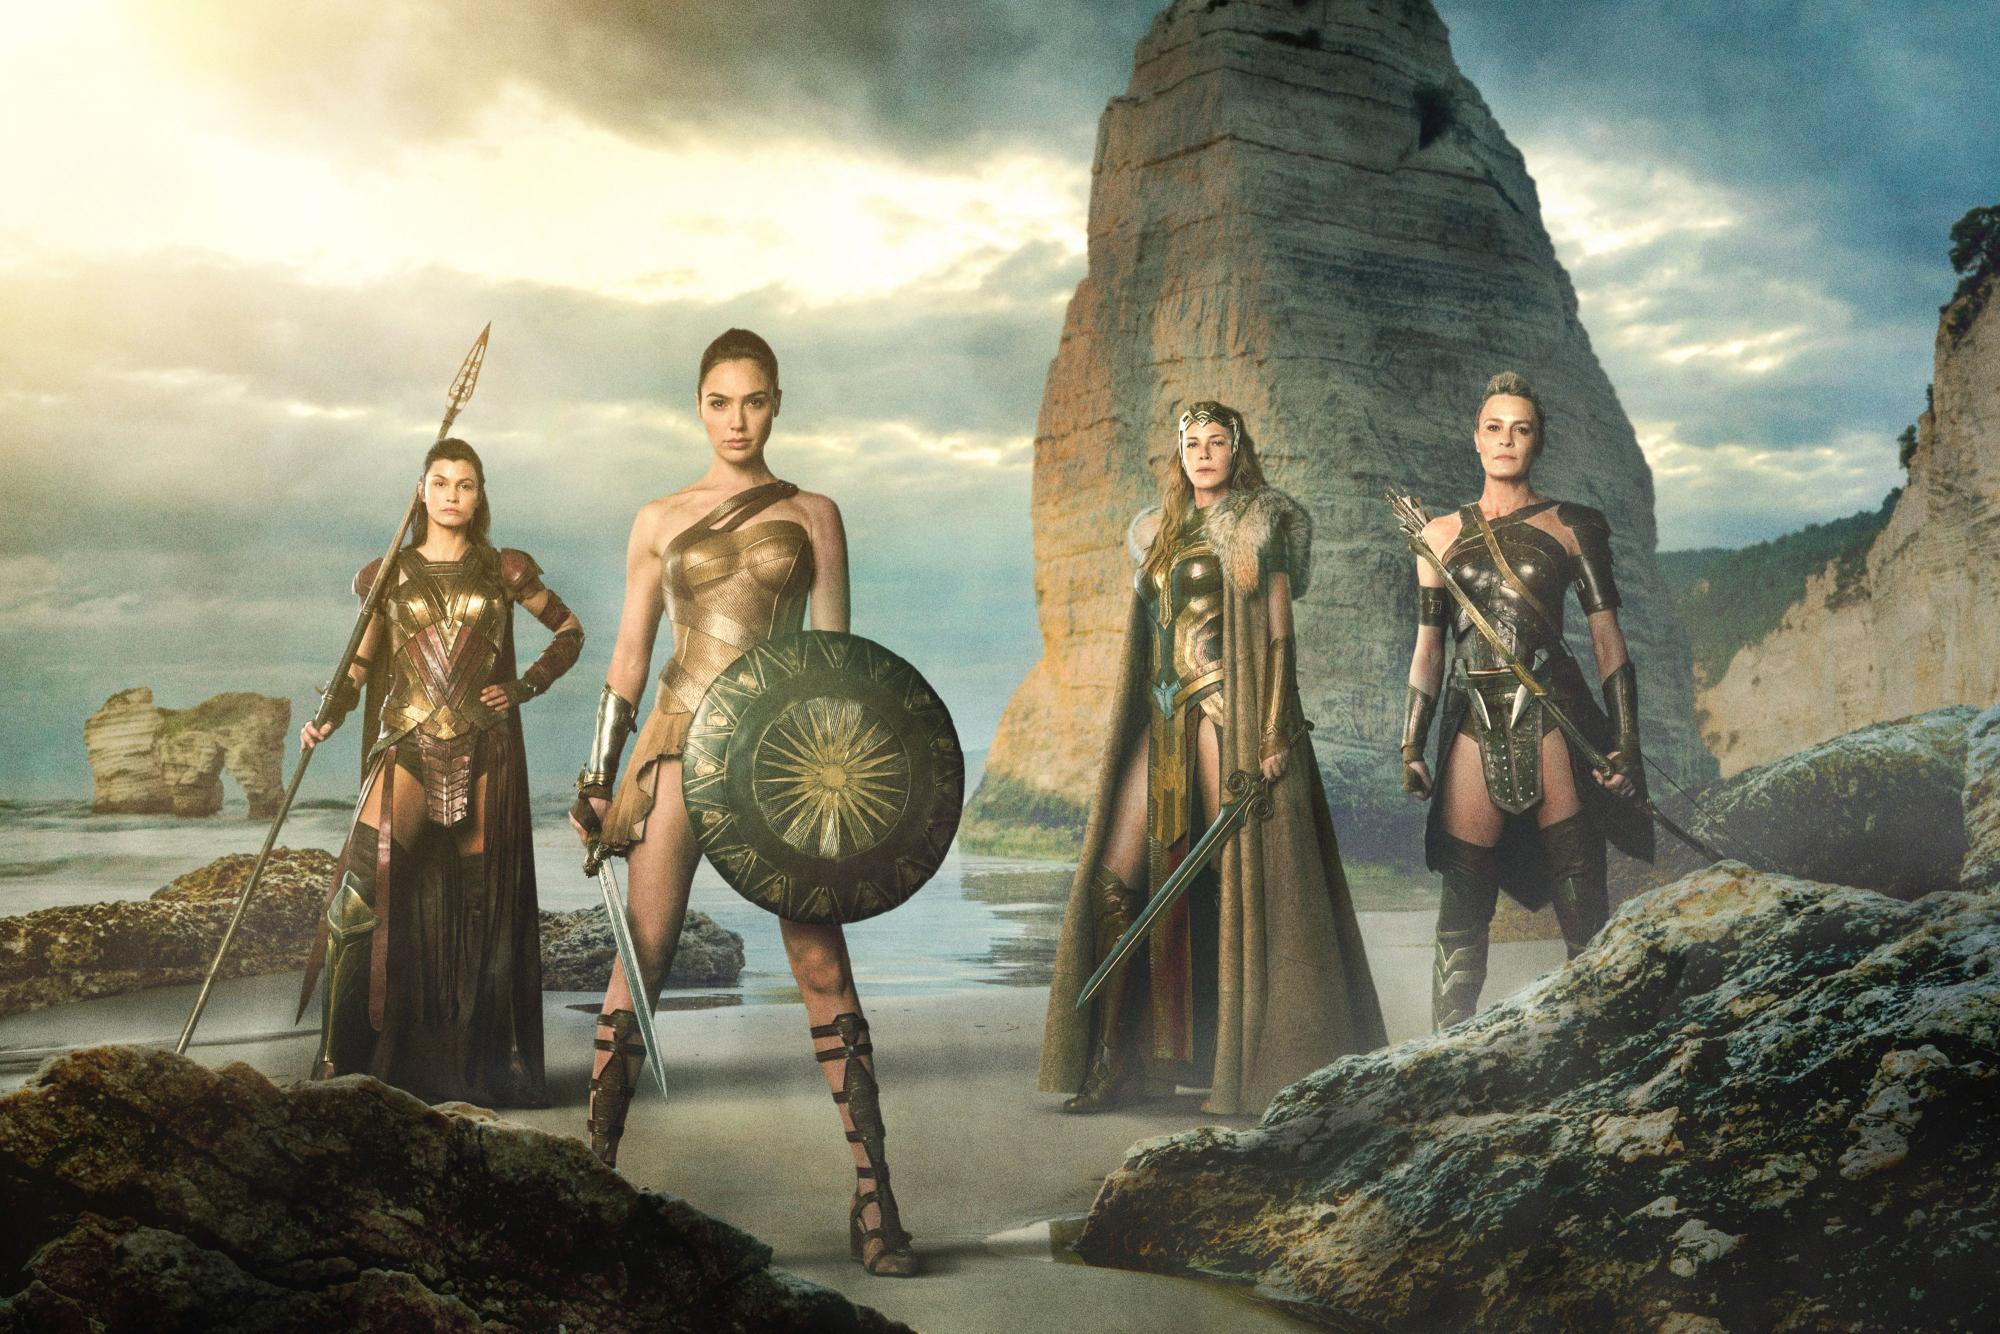 Wonder Woman - Diana Prince, queen Hippolyta and General Antiope